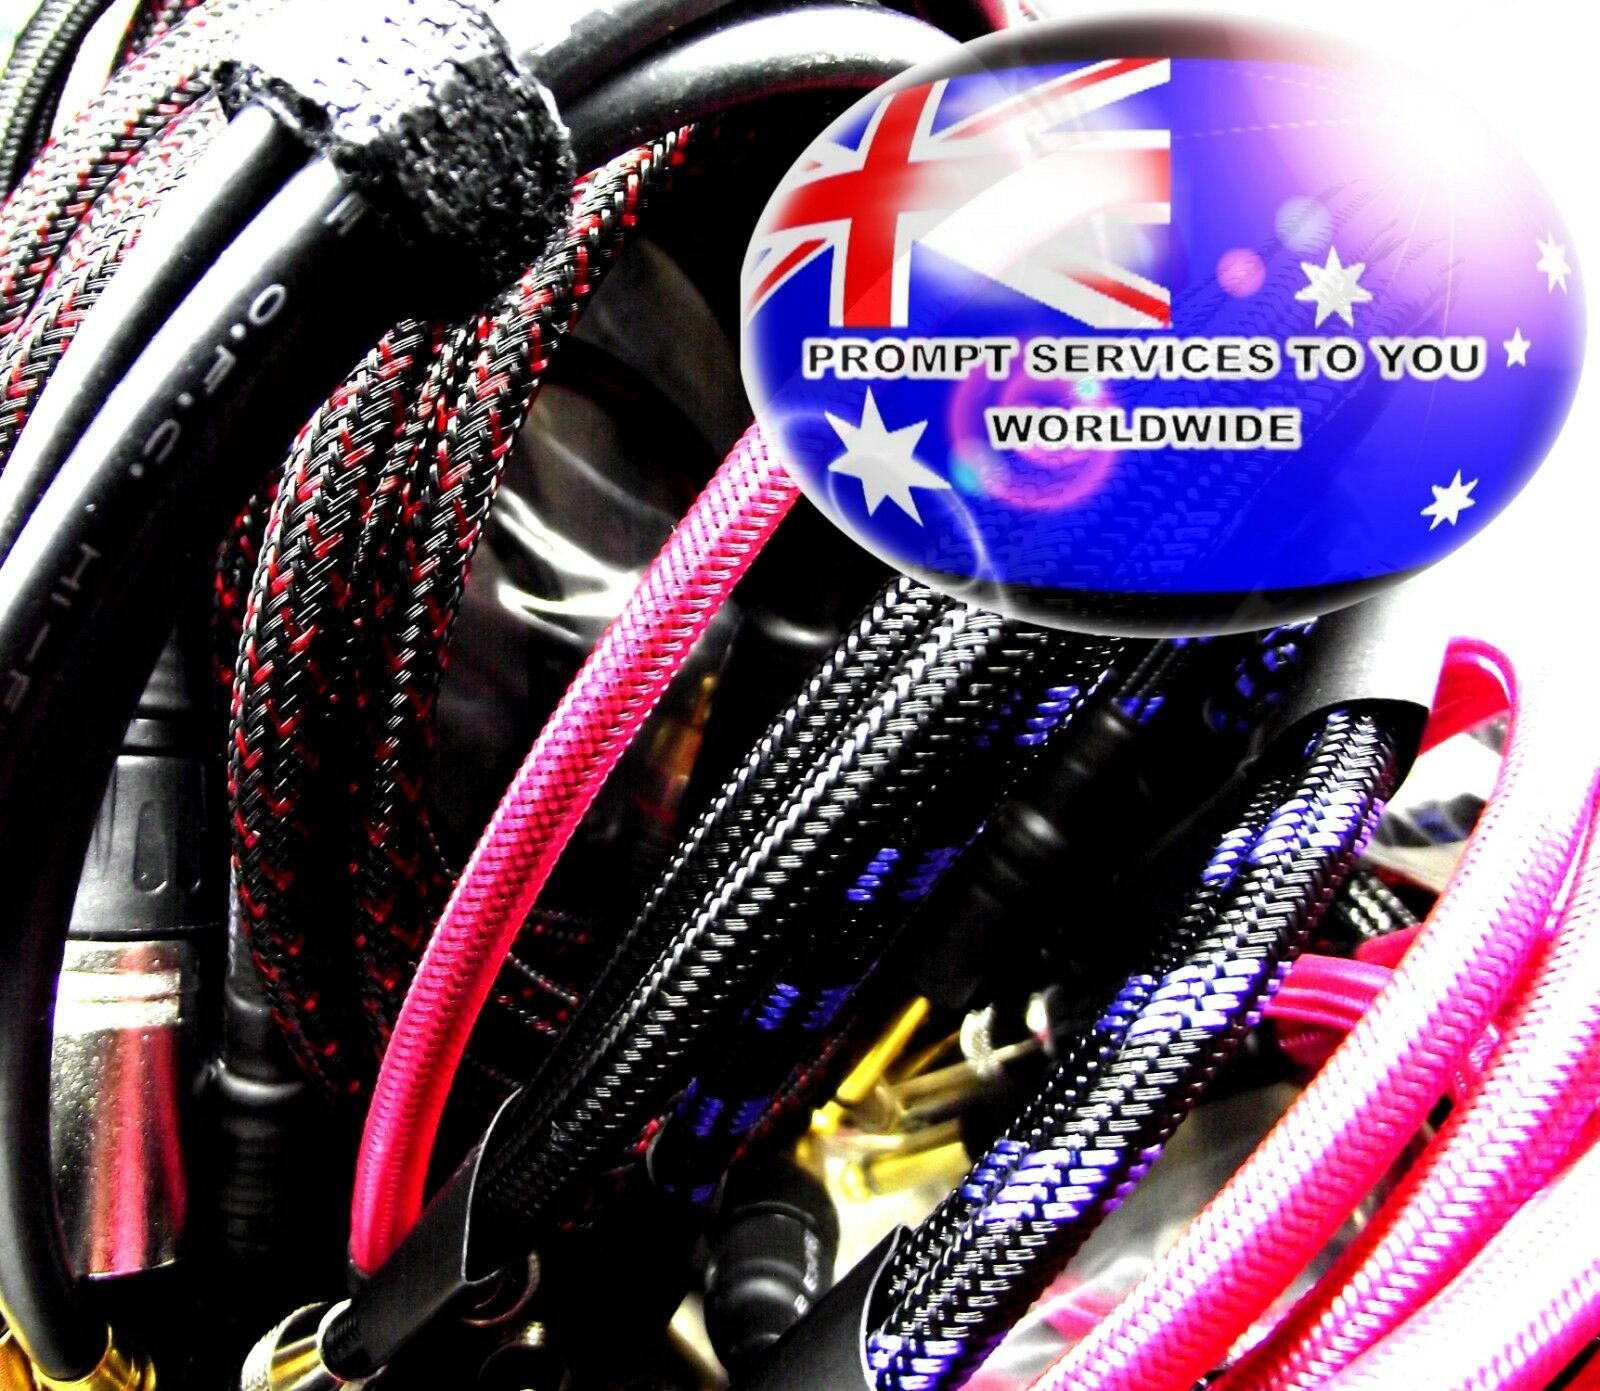 From OZ Quality 6PC CUSTOM TRS Patch Lead Wire Cable Male Plug Braided +FREEPOST